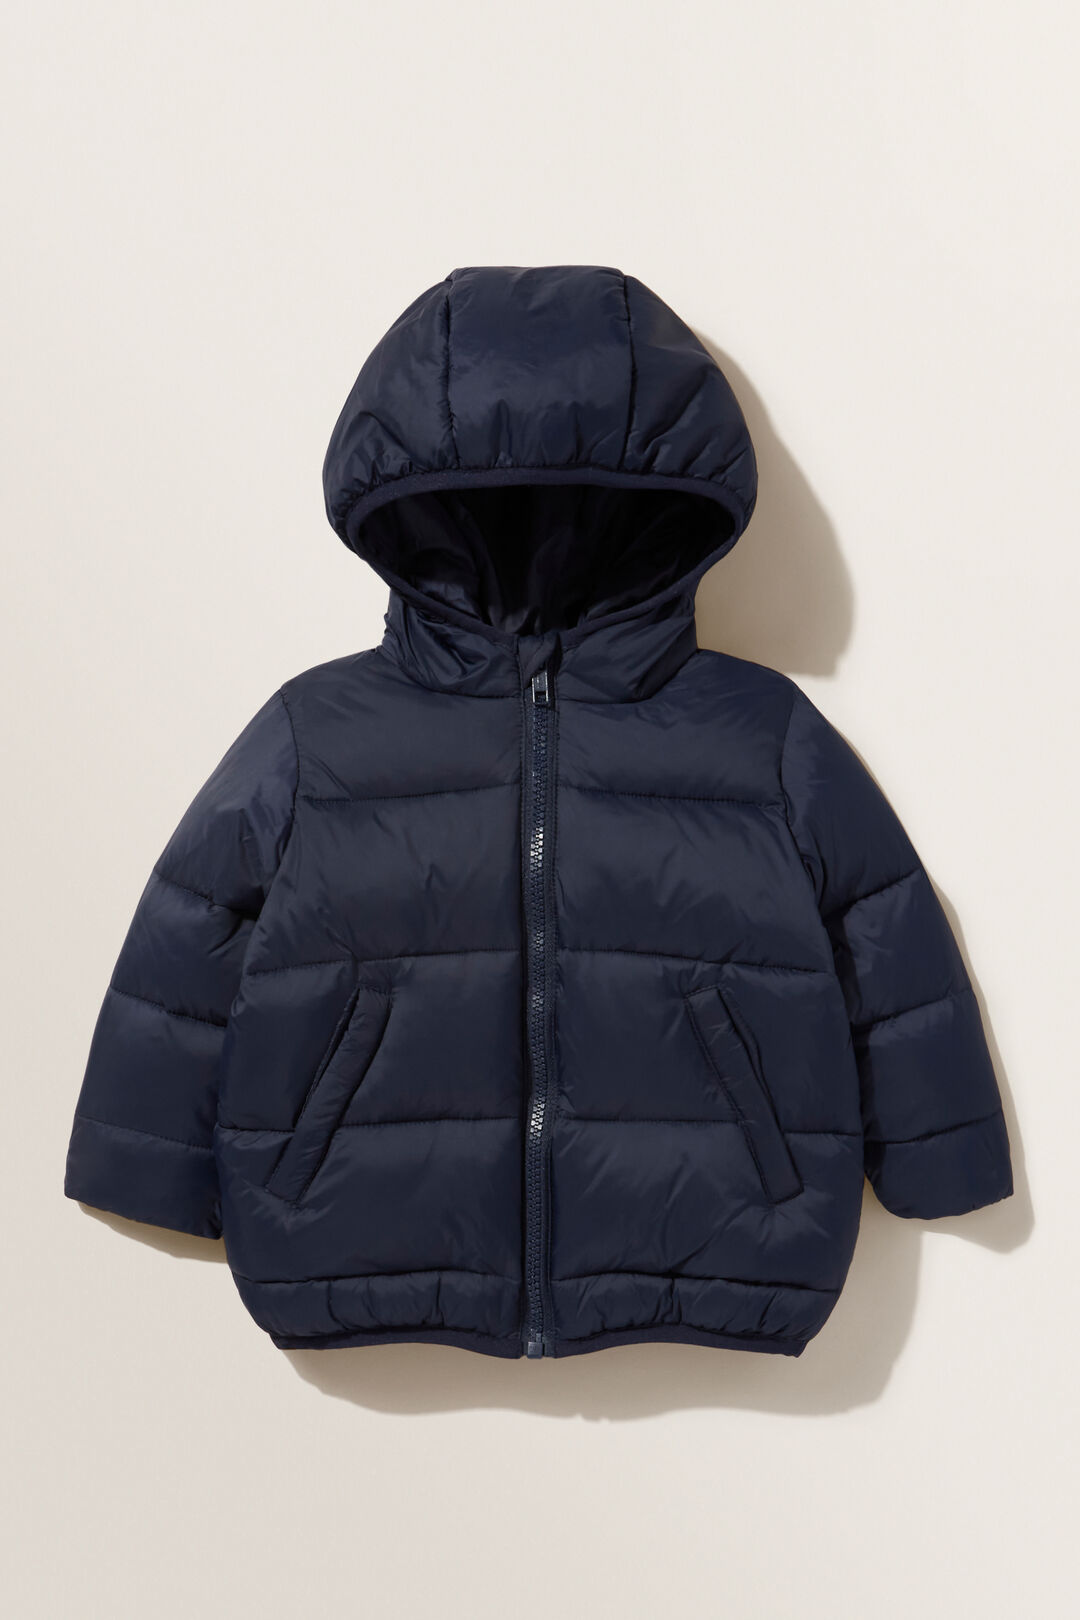 Classic Hooded Puffer Jacket  MIDNIGHT BLUE  hi-res